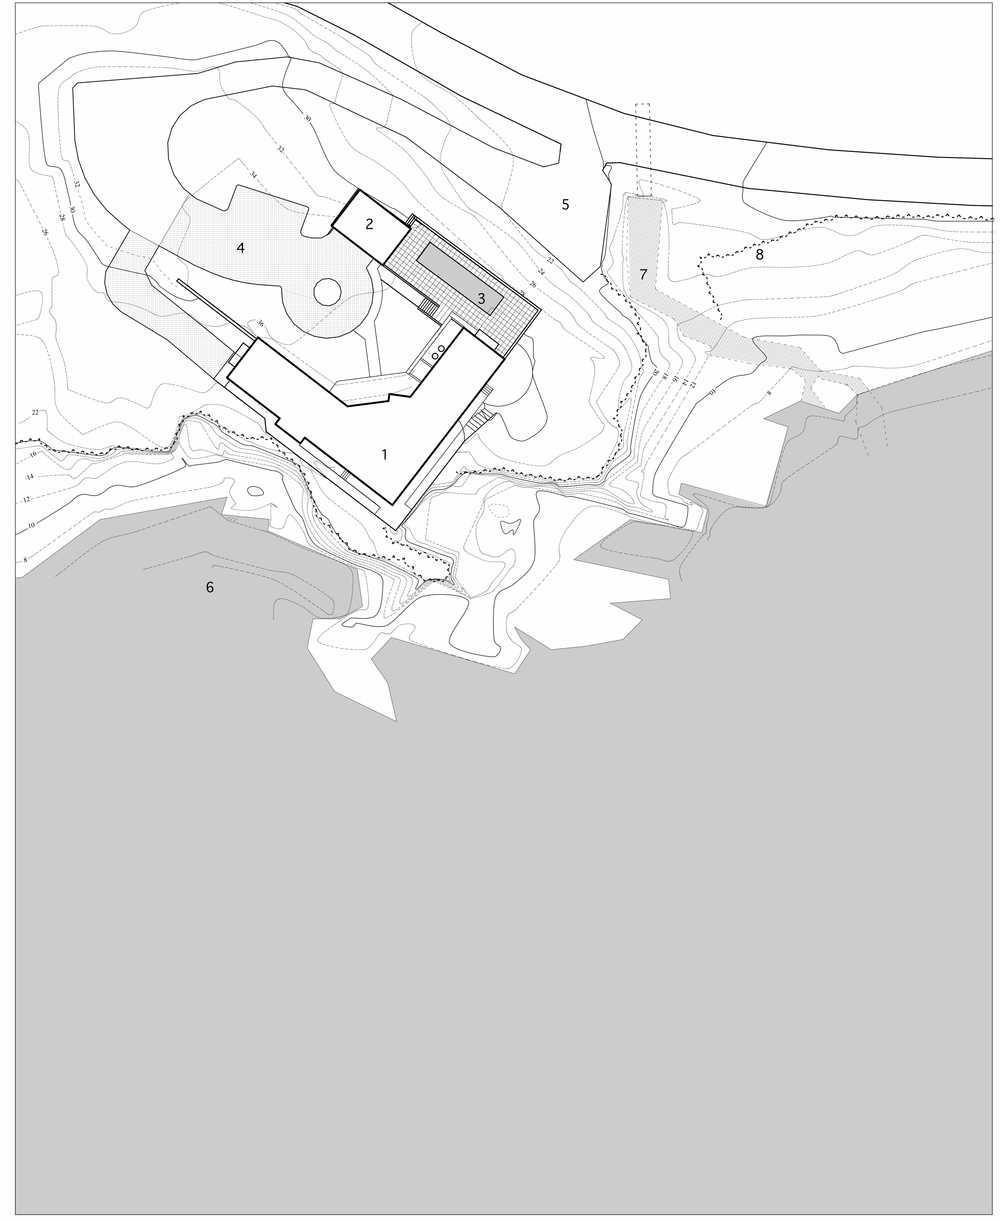 site plan:  (1) house, (2) garage, (3) swimming pool, (4) entry drive, (5) driveway, (6) coastline, (7) stream, (8) edge of site